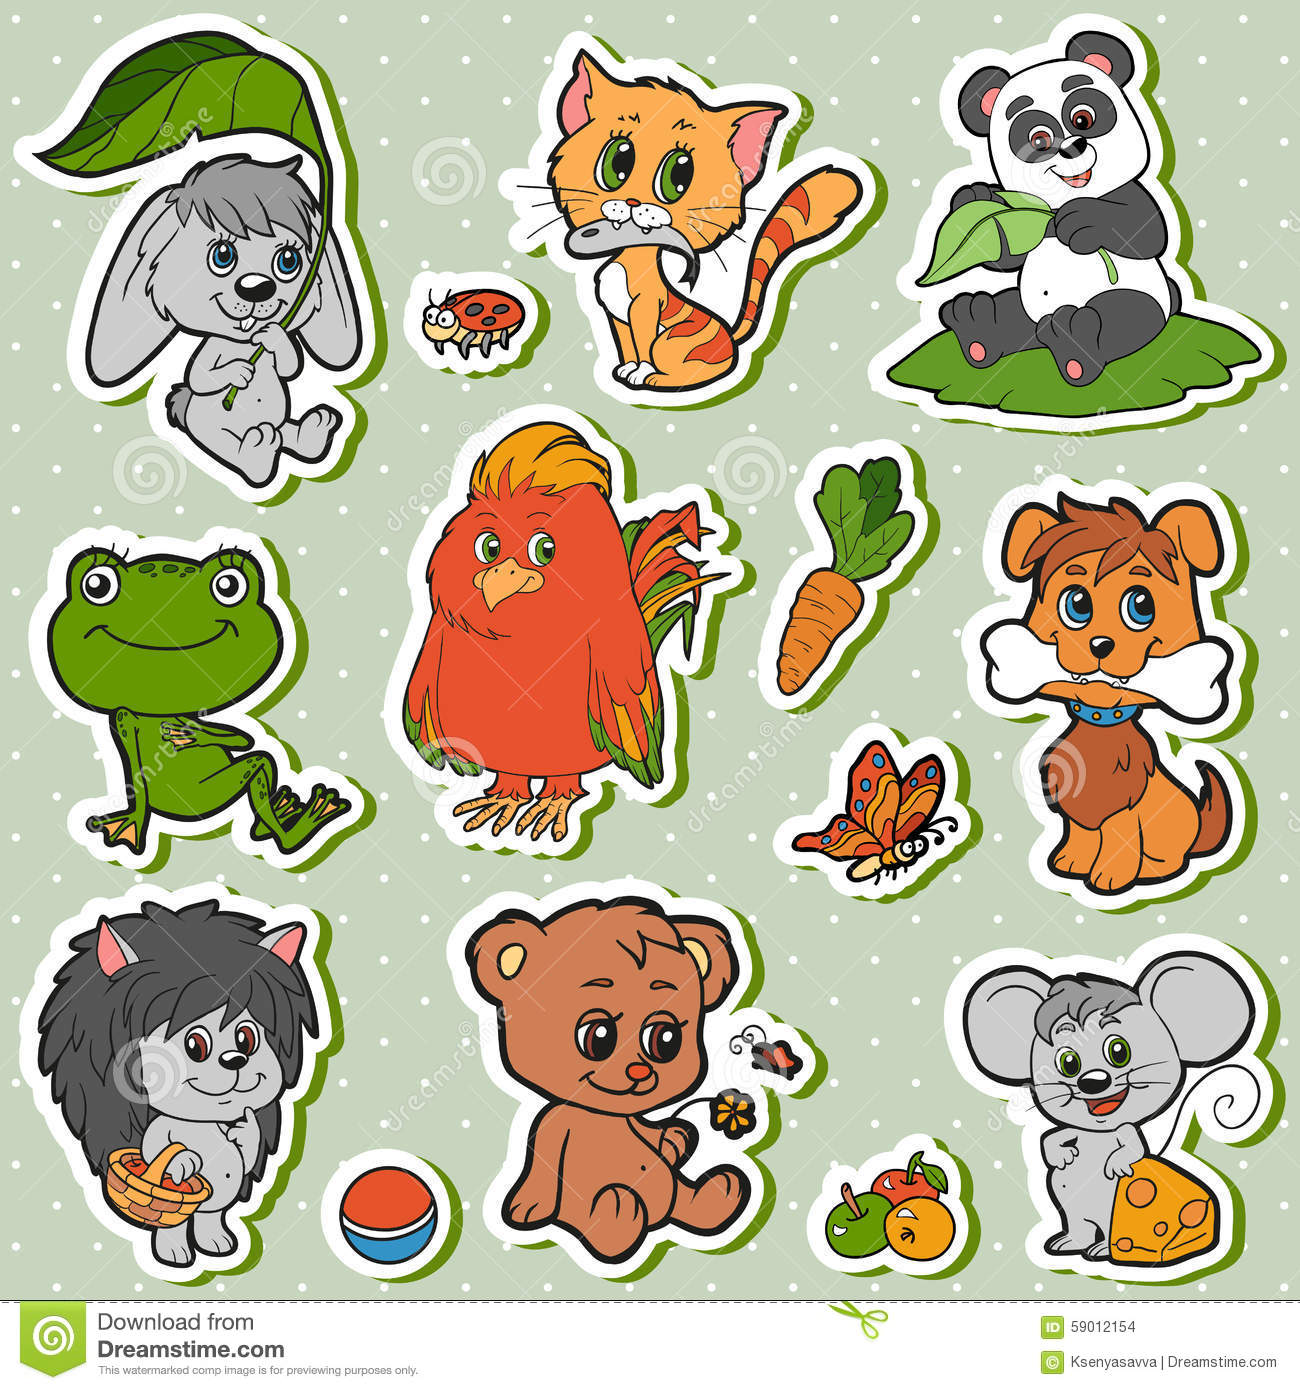 Panda Dog And Friends Facebook Stickers